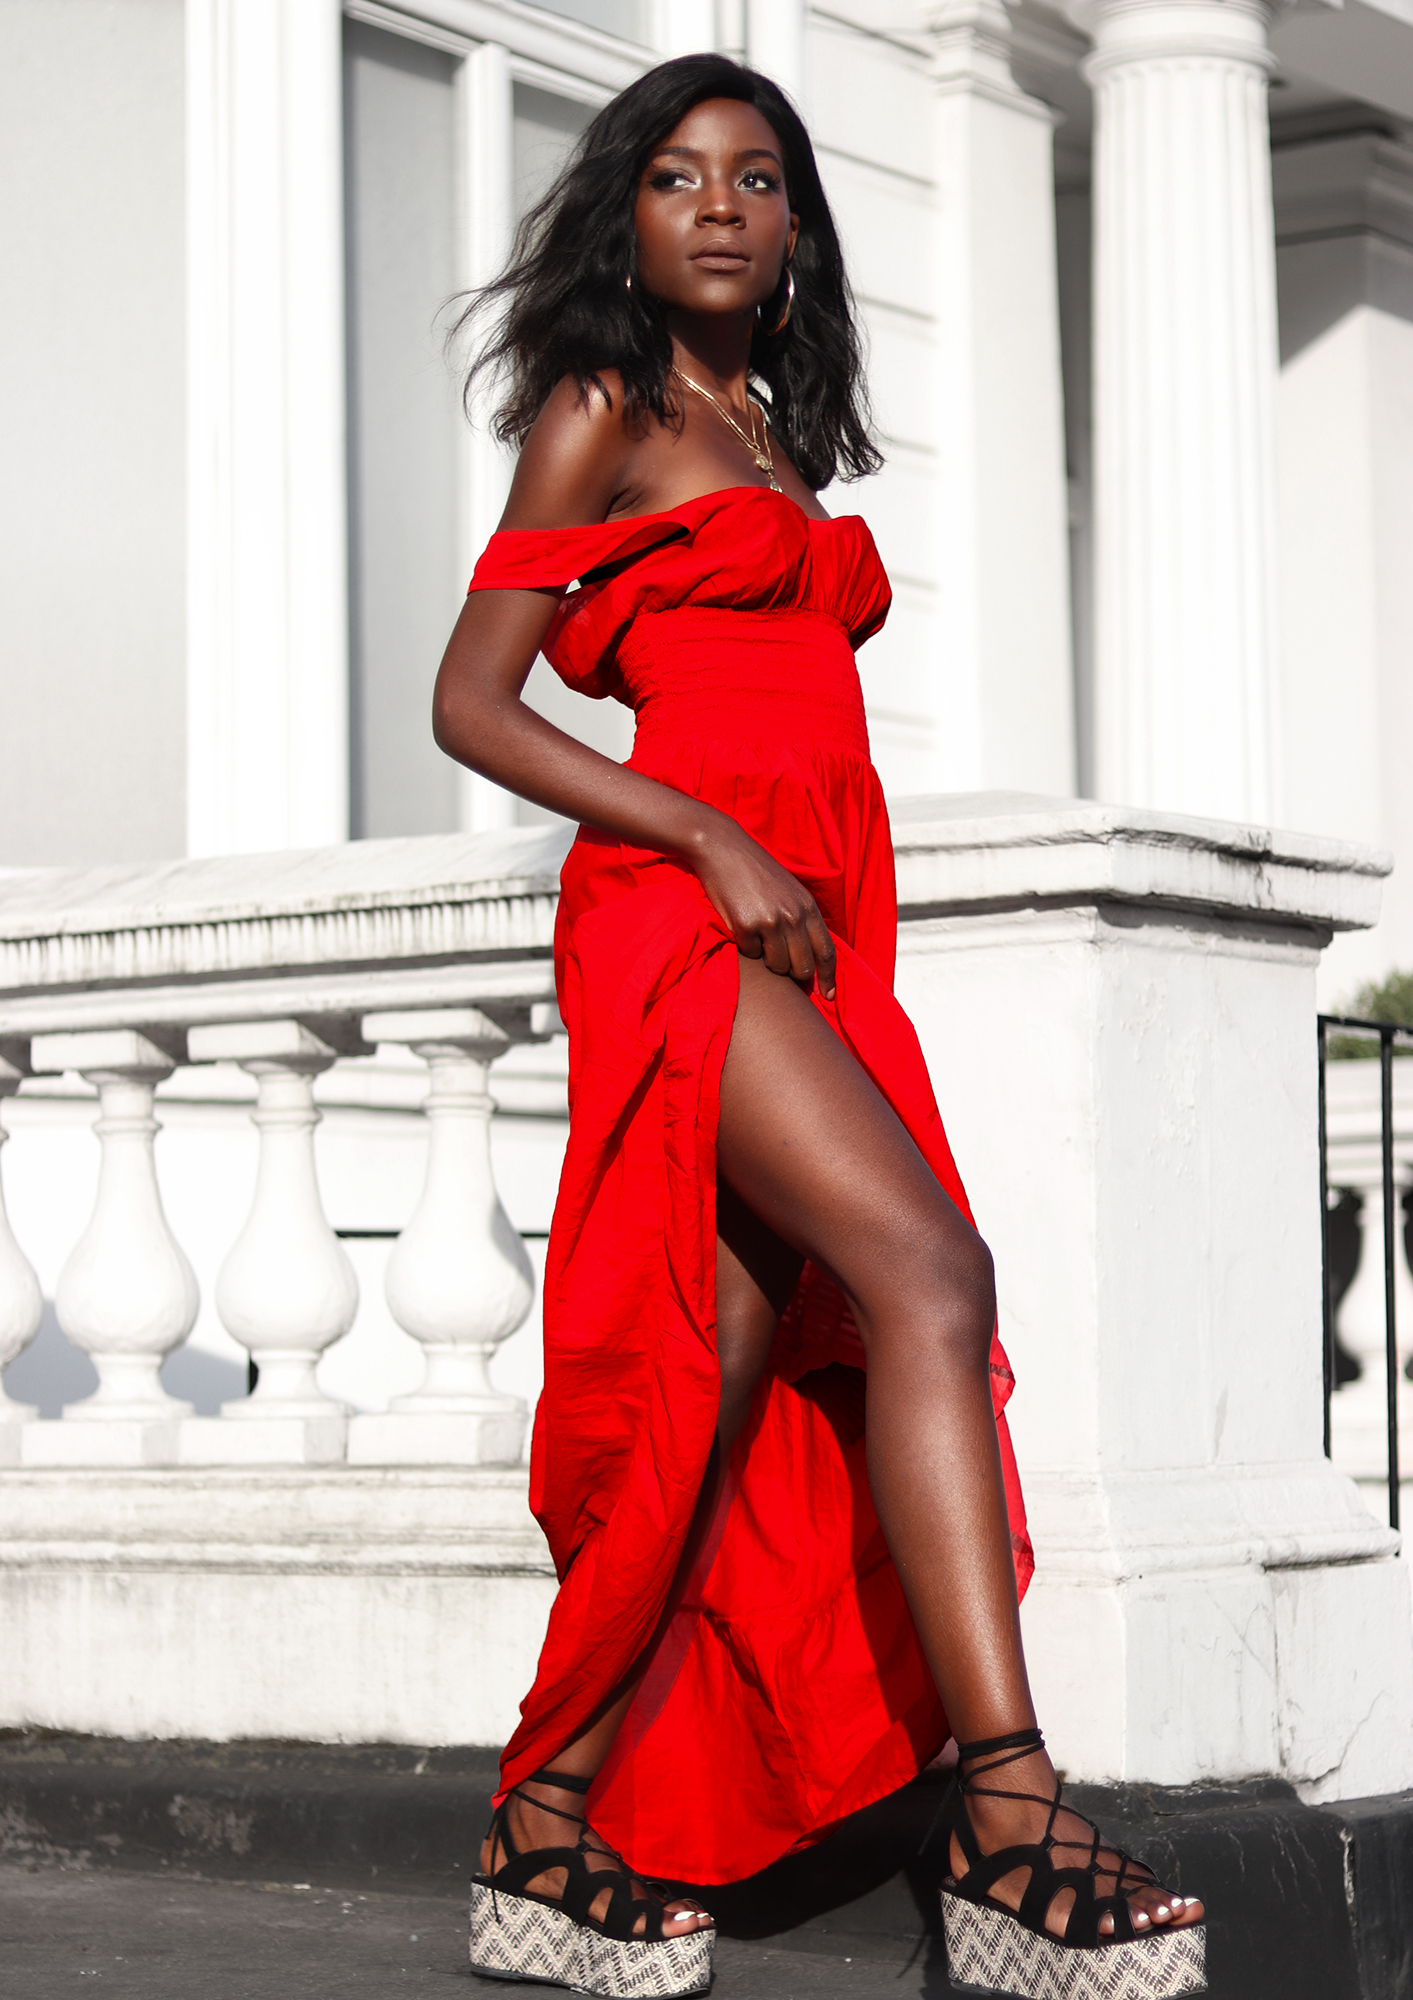 The Red Dress Effect – ChicGlamStyle